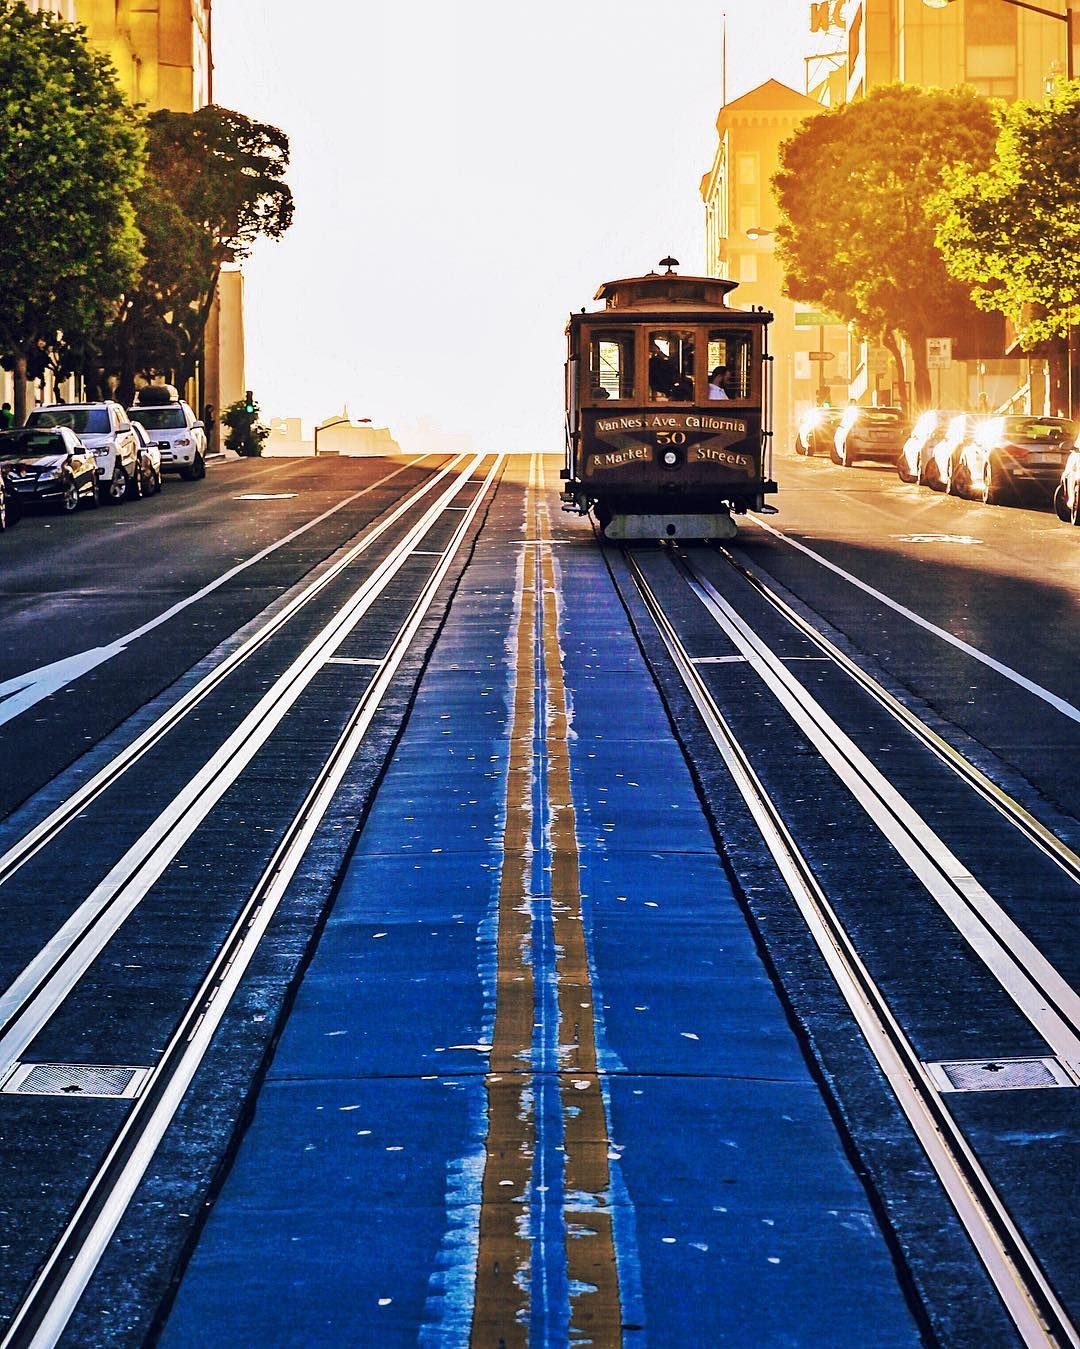 A trolley approaching at golden hour by @garrettroth. Processed with #MuseCam MC09. by musecam.co